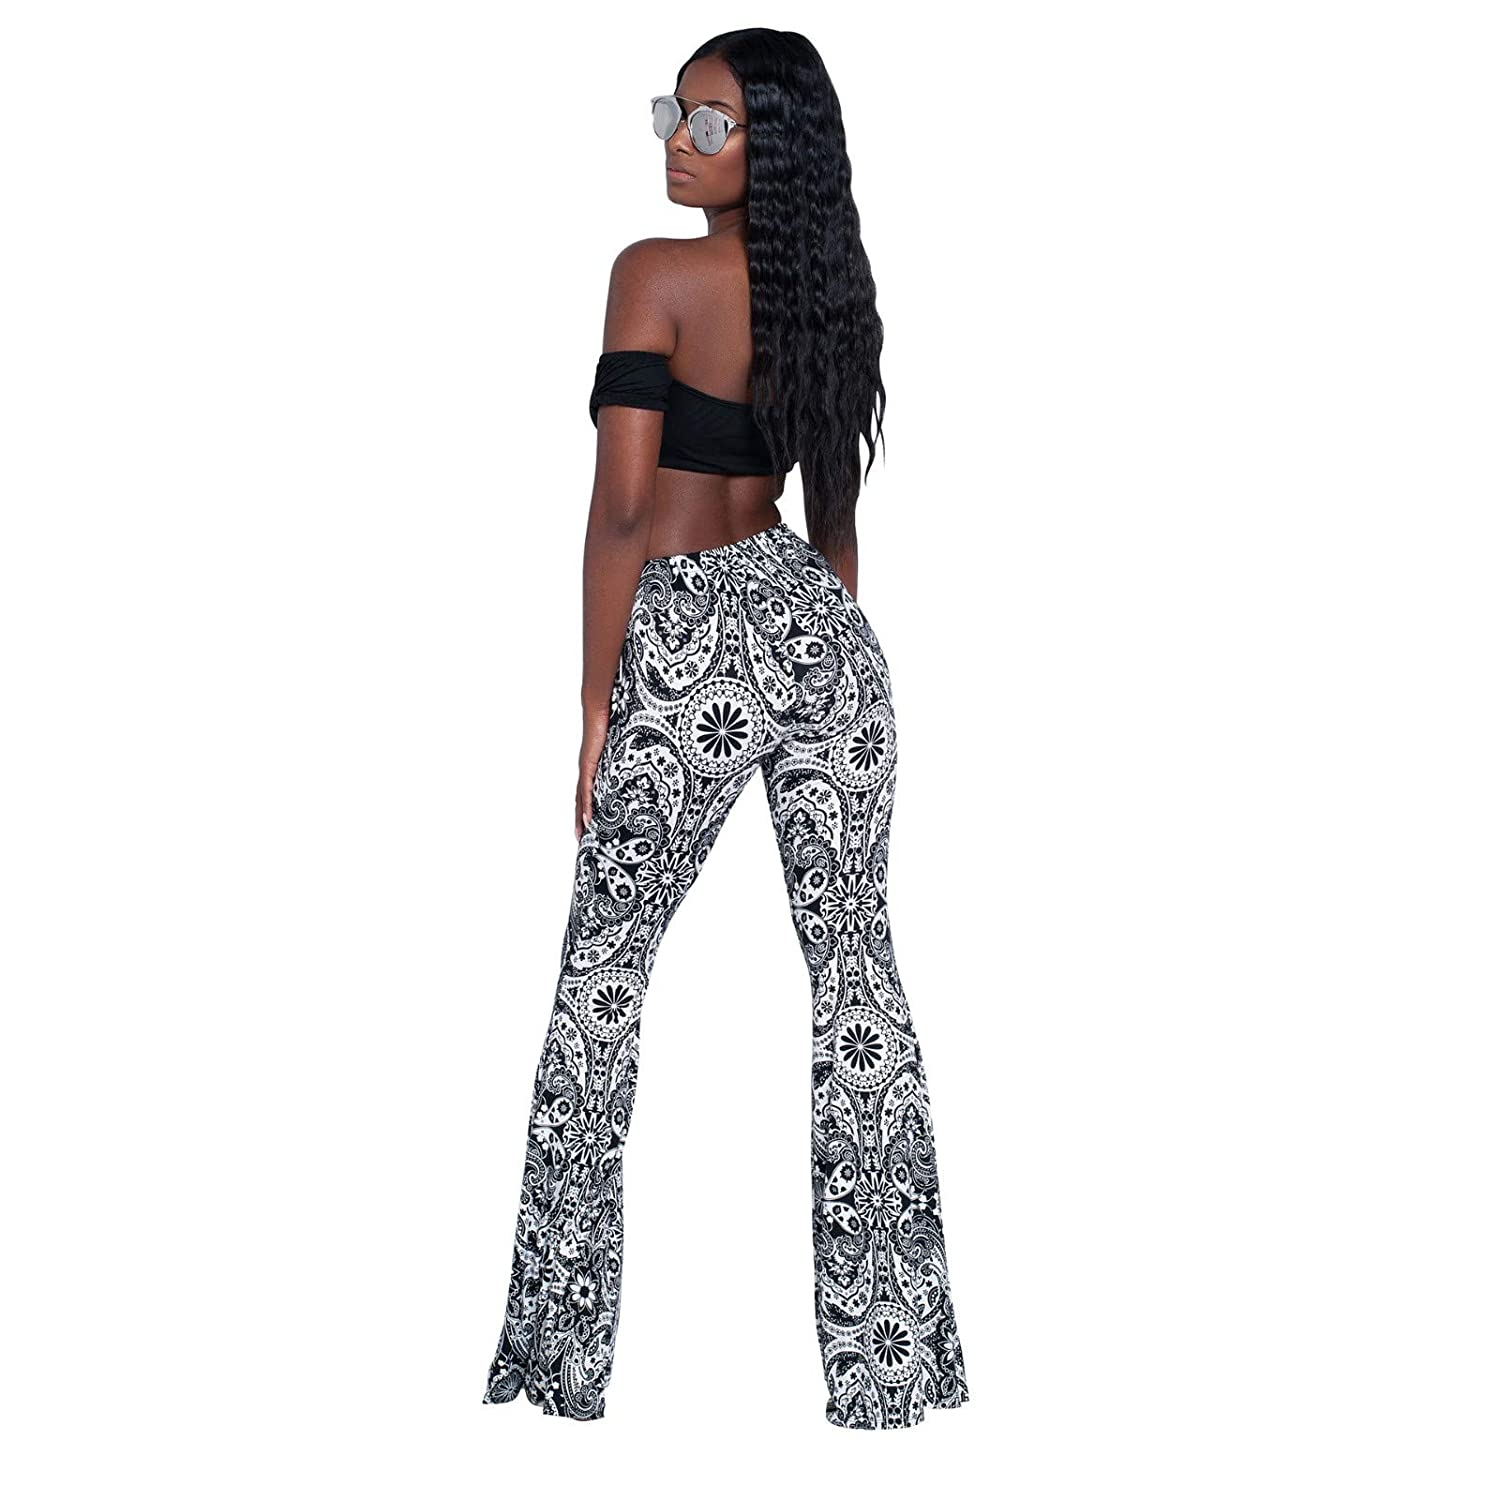 BBesty Big Sale Womens Trousers High Waist Casual Tight Bell Bottom Pants Wide Leg Printed Flared Pants